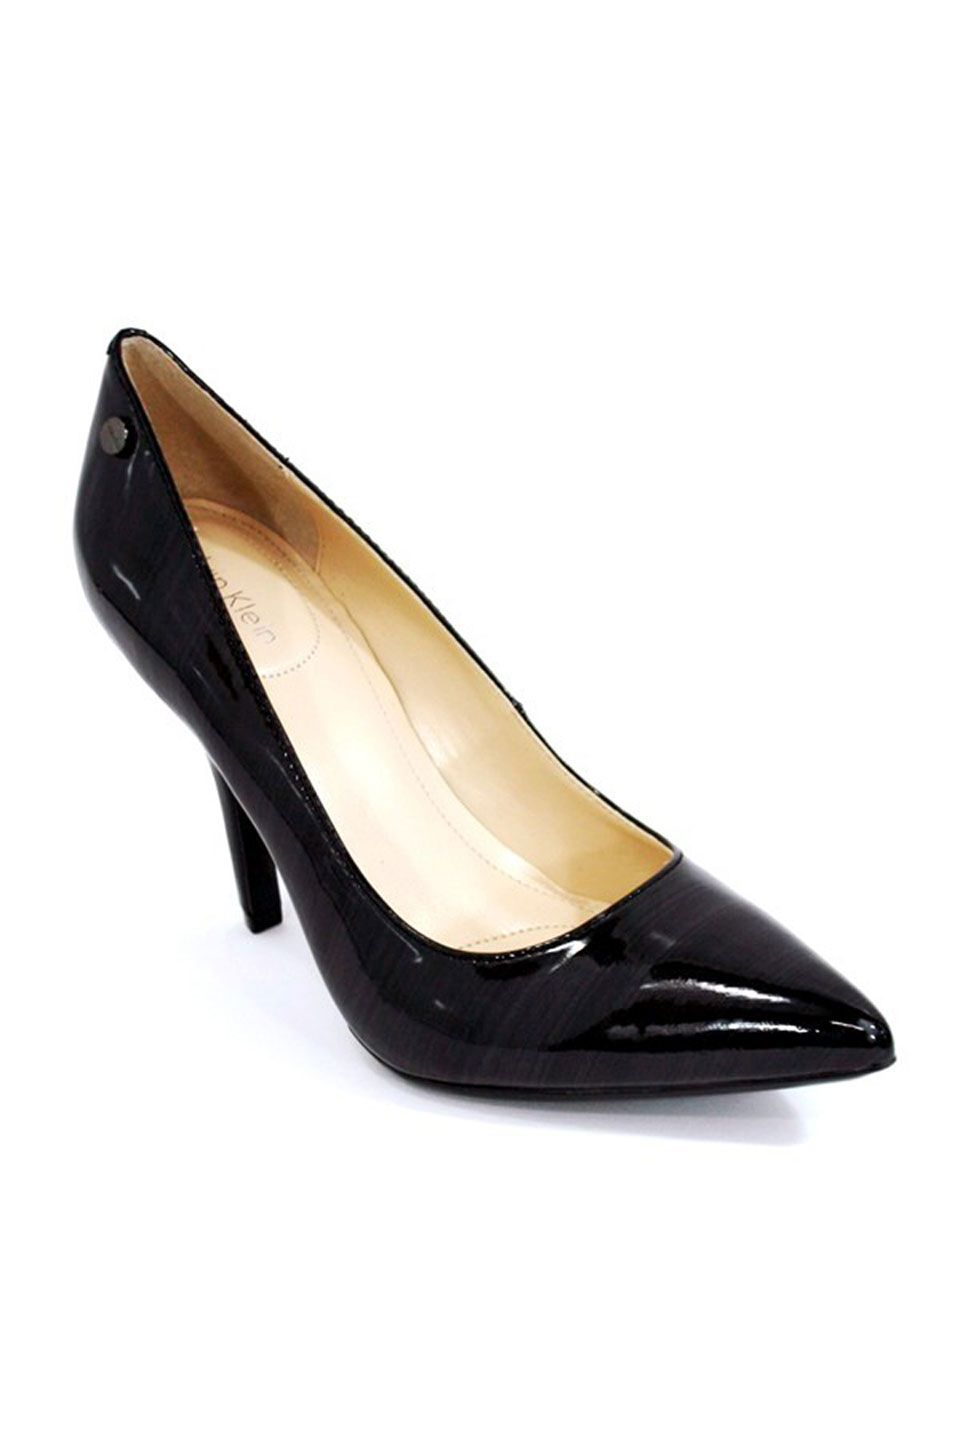 Calvin Klein Natalie Leather Pump In Black Crazy Shoes Leather Pumps My Style